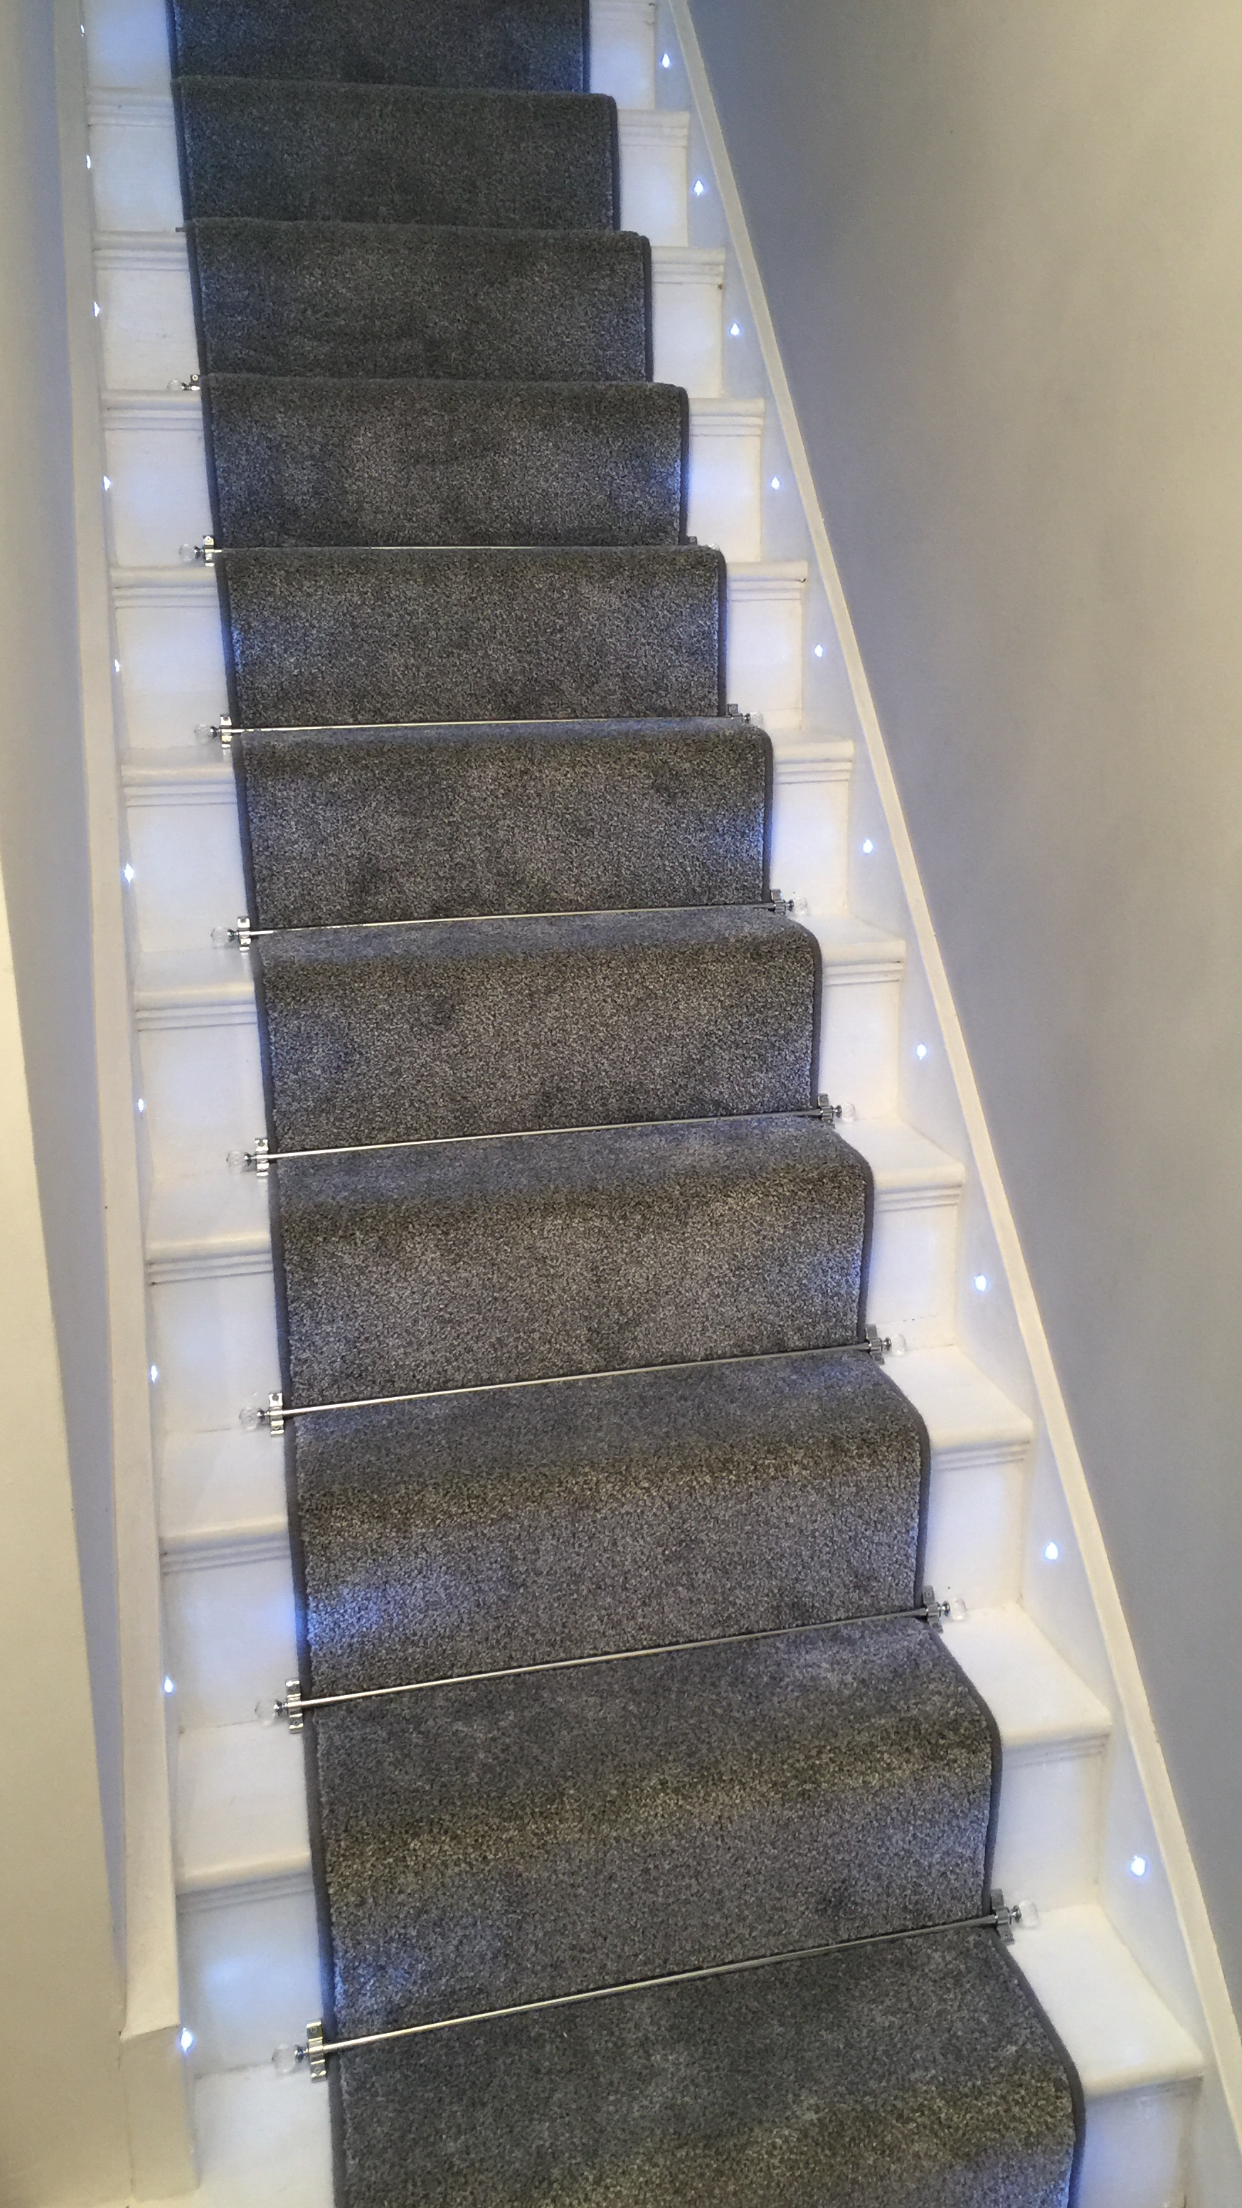 lighting stairs. Stair Idea - Grey Carpet Runner, Rods, Lights ❤️ Lighting Stairs